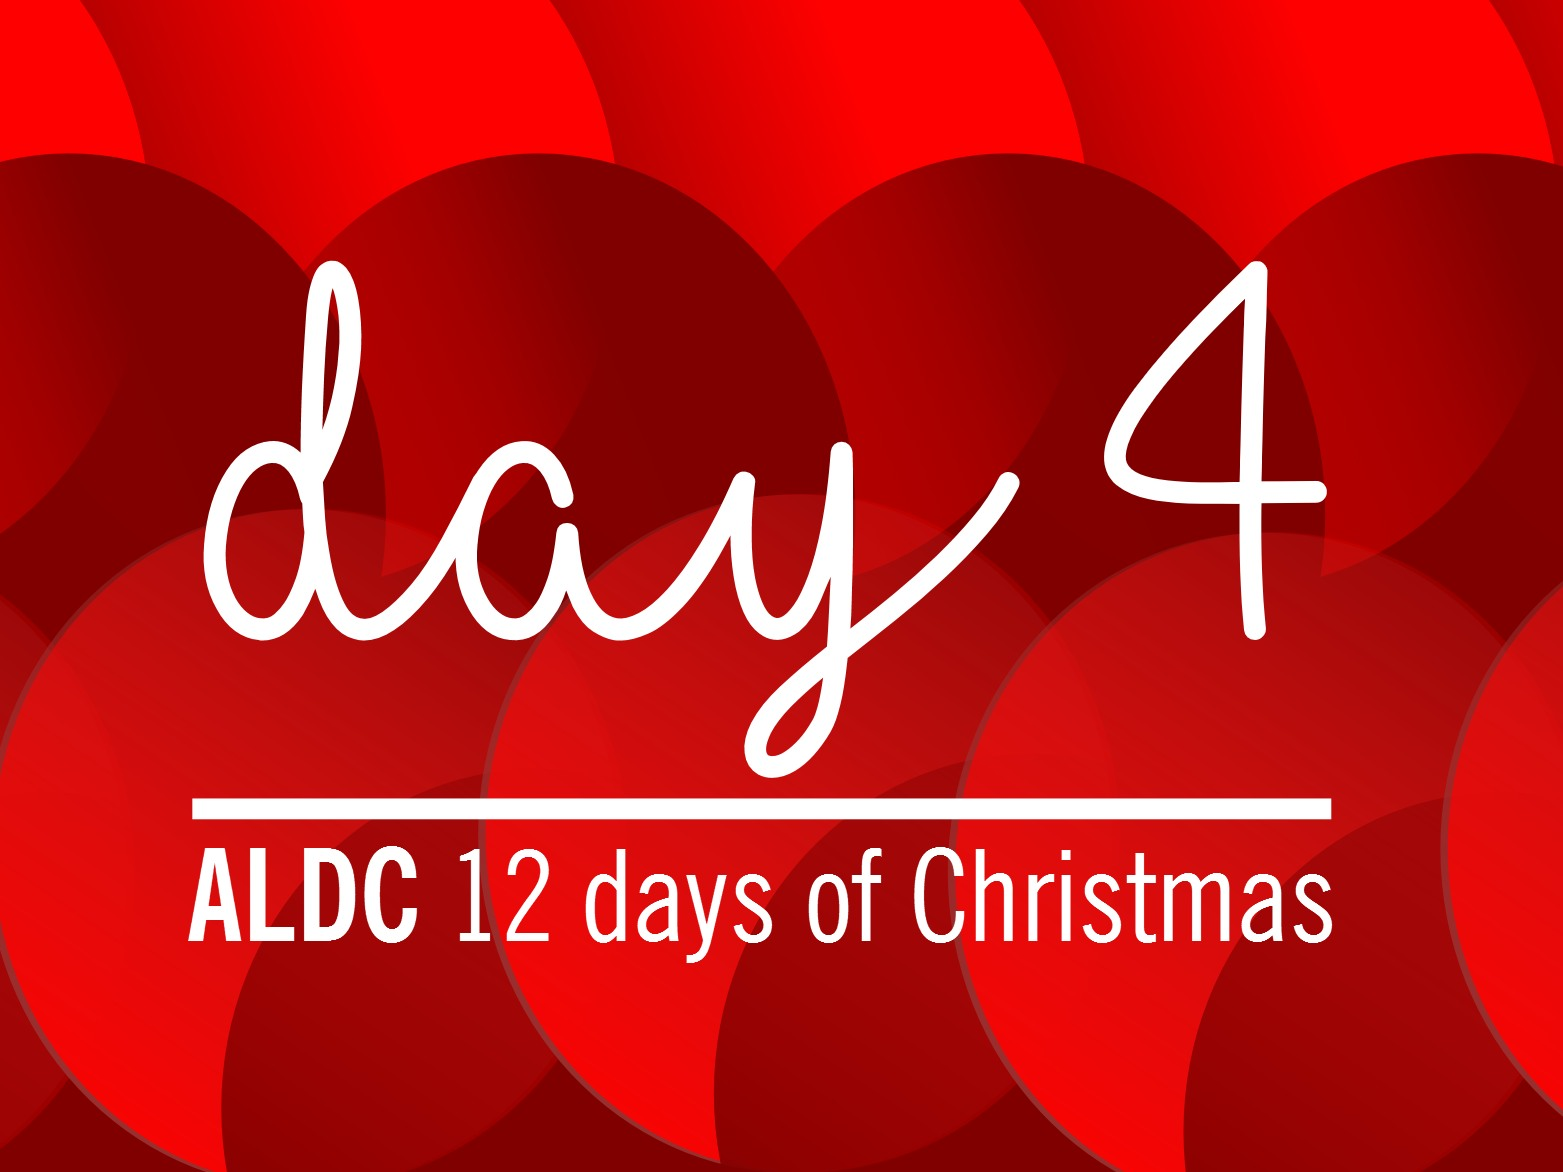 On the fourth day of Christmas, ALDC gave to me…